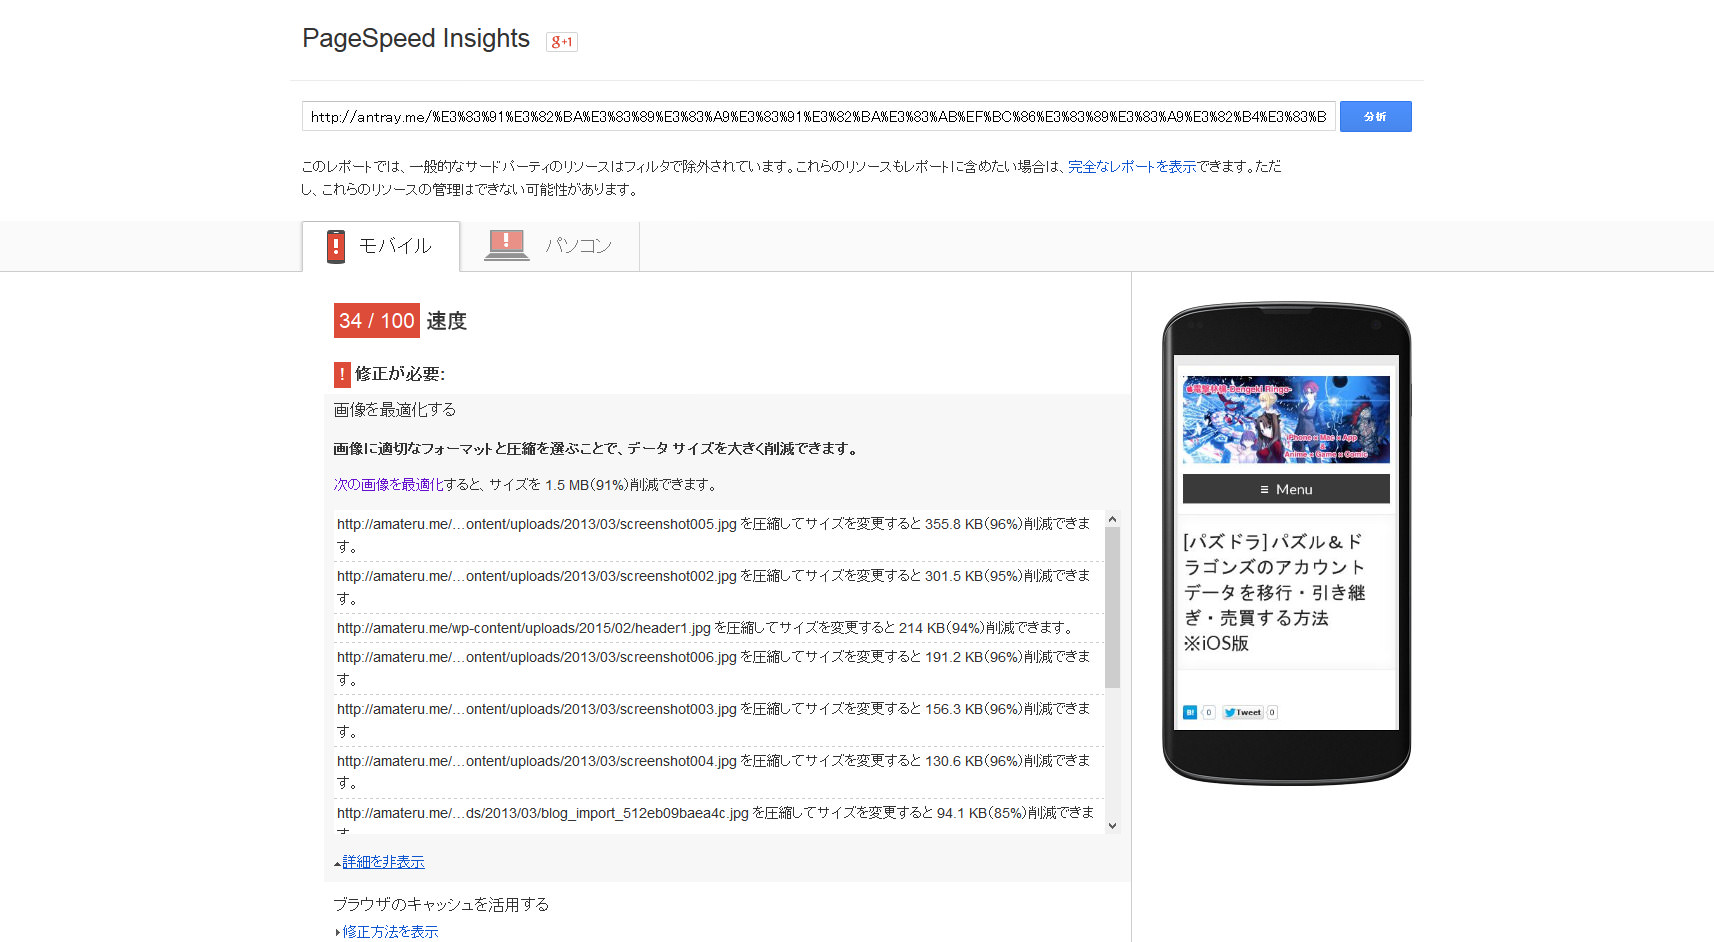 PageSpeed Insights 画像を最適化する